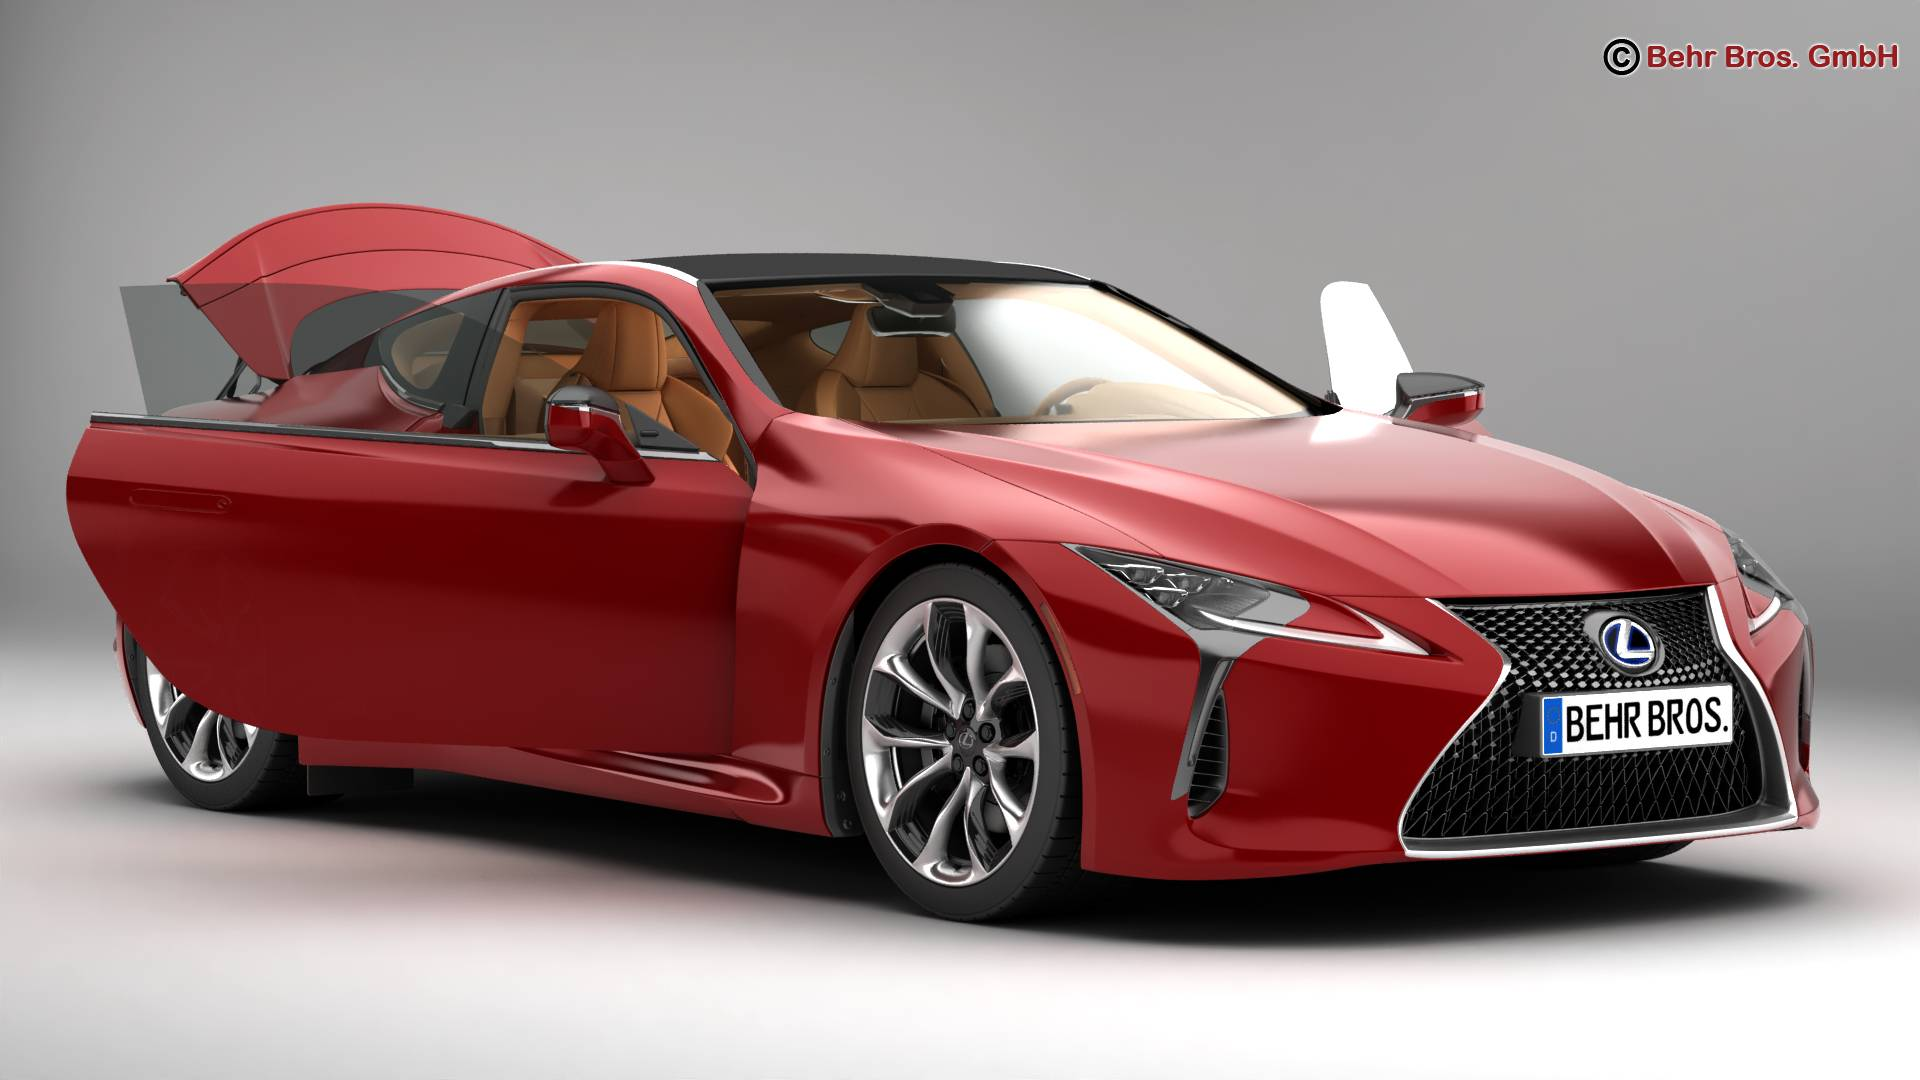 Lexus Lc 500 Interior >> Lexus LC 500 US Hybrid 2018 3D Model – Buy Lexus LC 500 US Hybrid 2018 3D Model | FlatPyramid